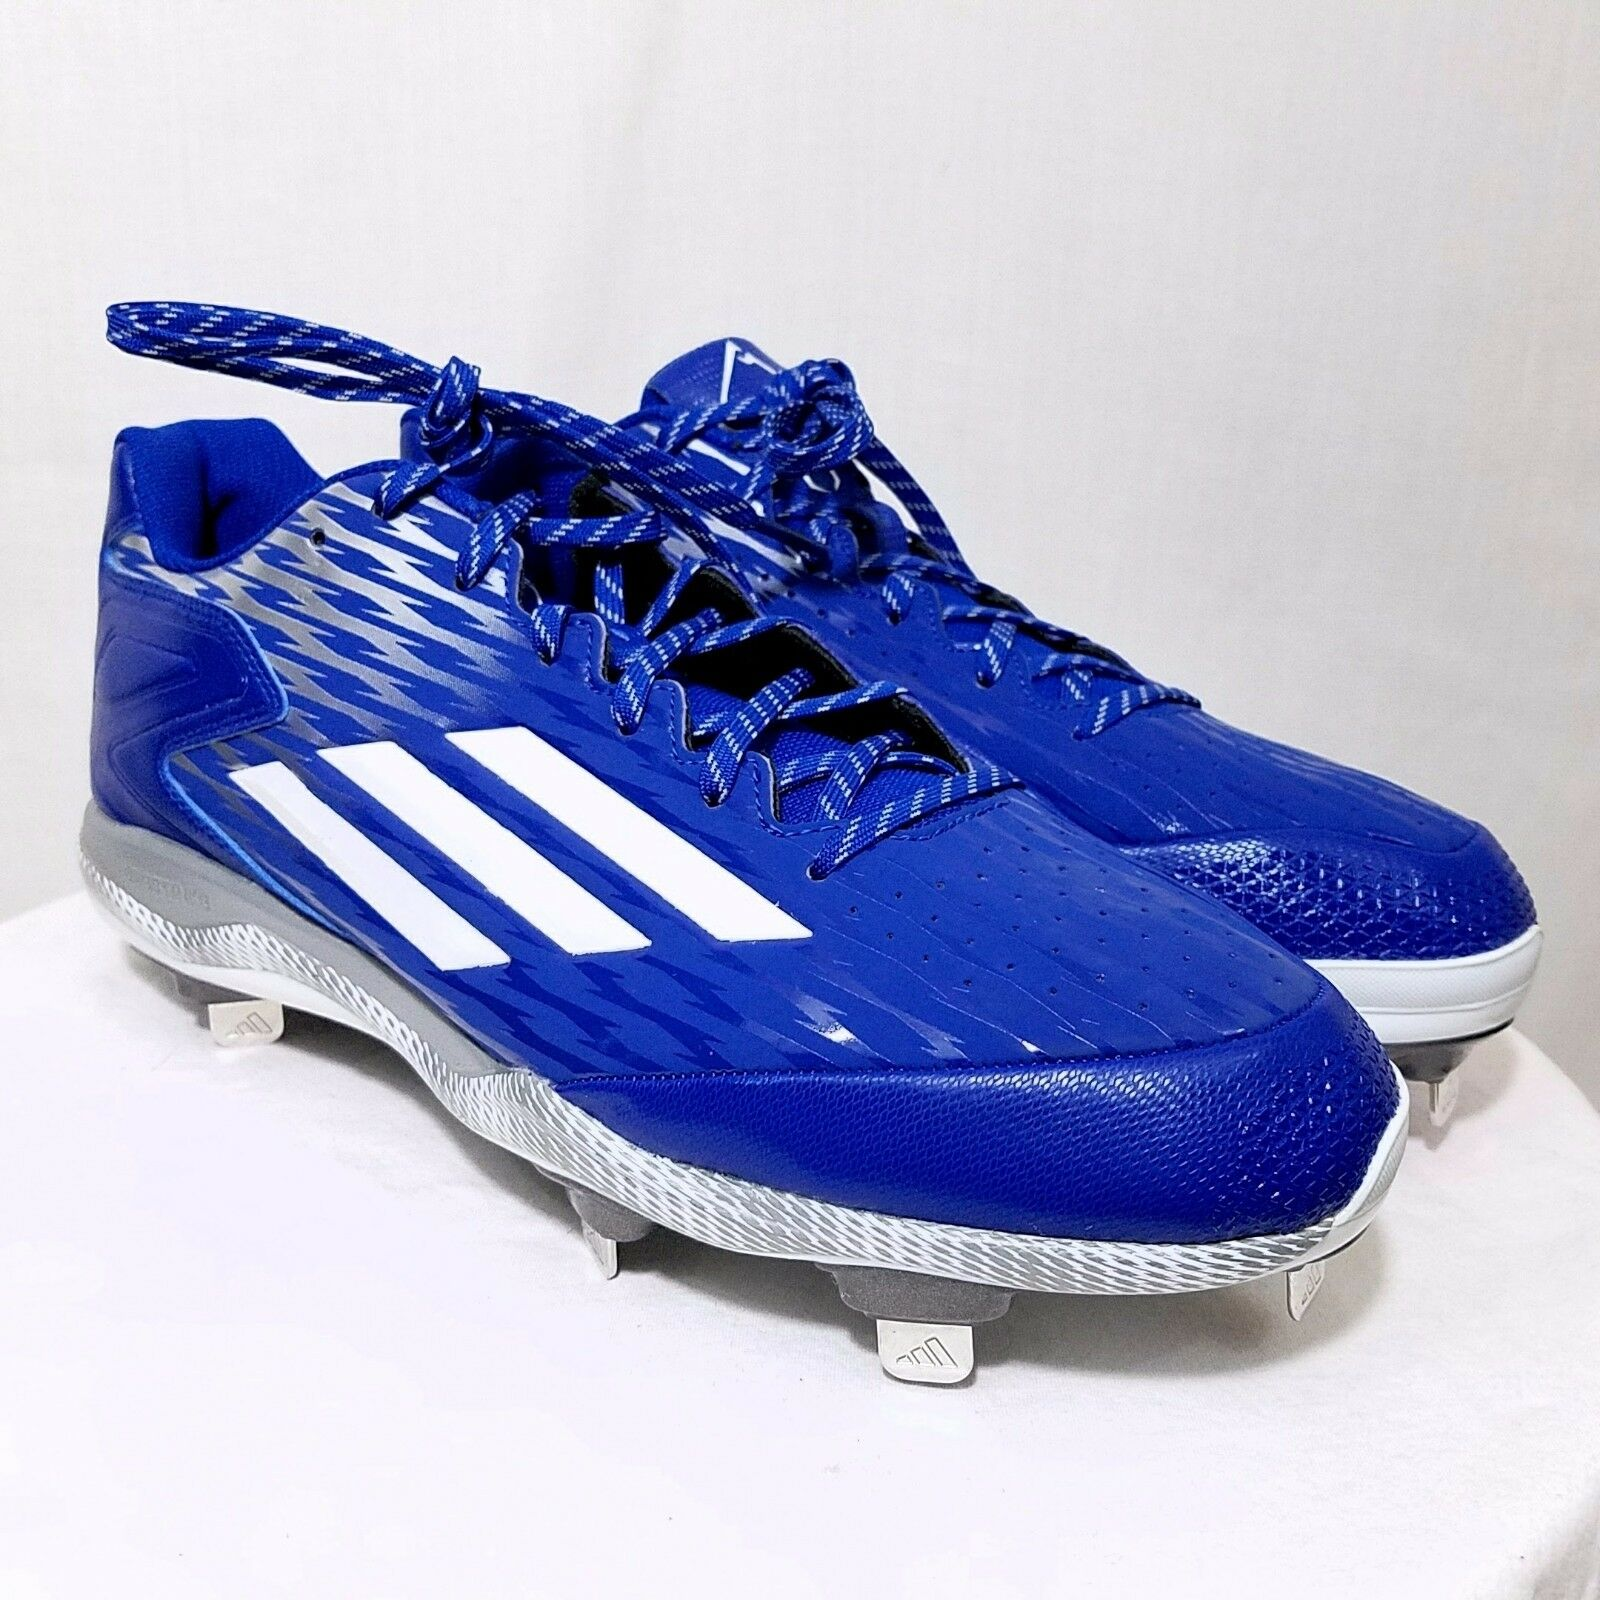 d7ad3f2fd35 Adidas Mens PowerAlley 3 Baseball Cleats Metal Performance shoes S84763 US  12.5